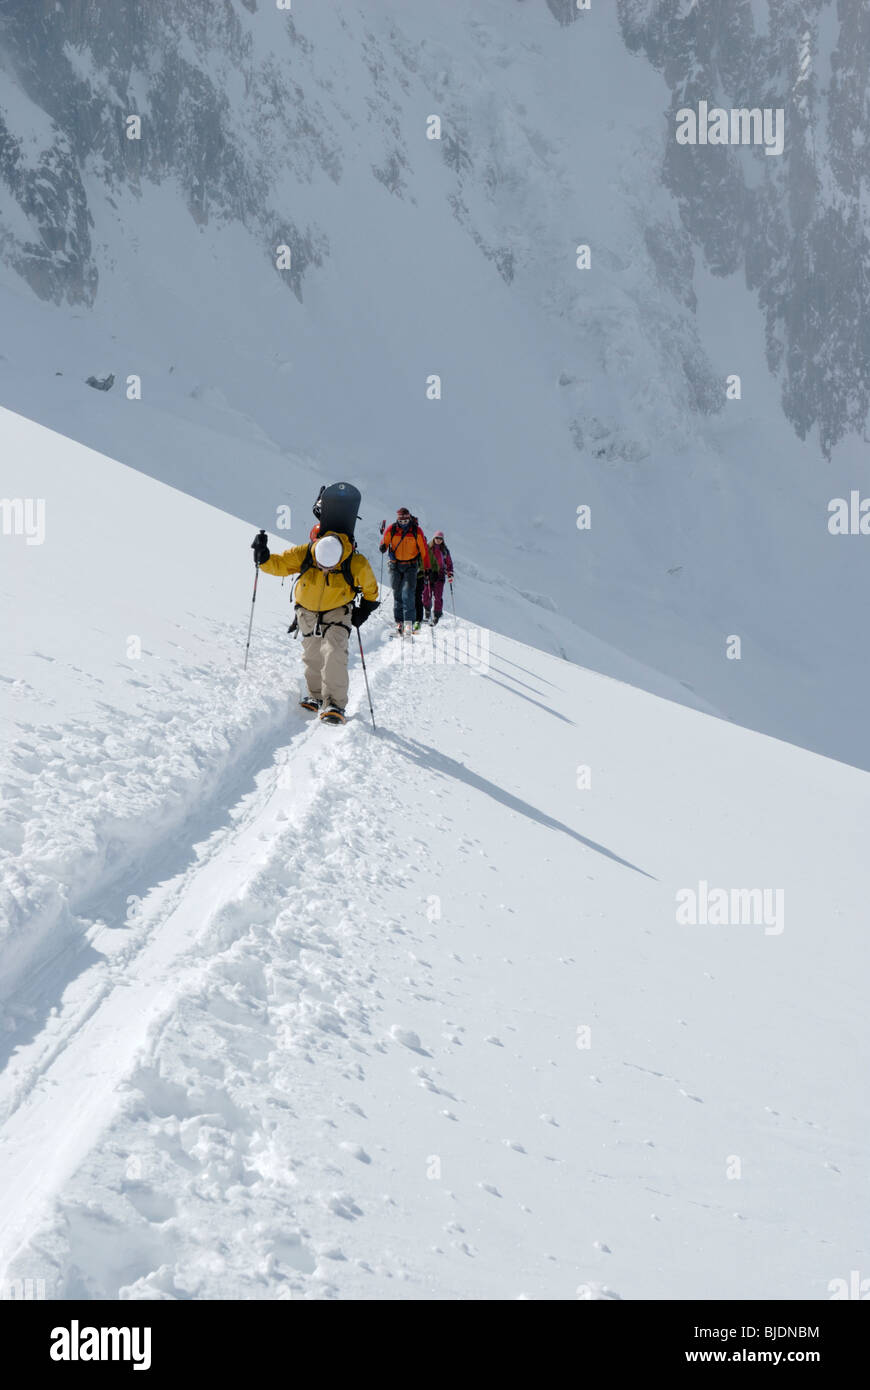 Snowboarder and skiers ascending a snowy slope in glaciated terrain above The Vallee Blanche, Chamonix, France - Stock Image